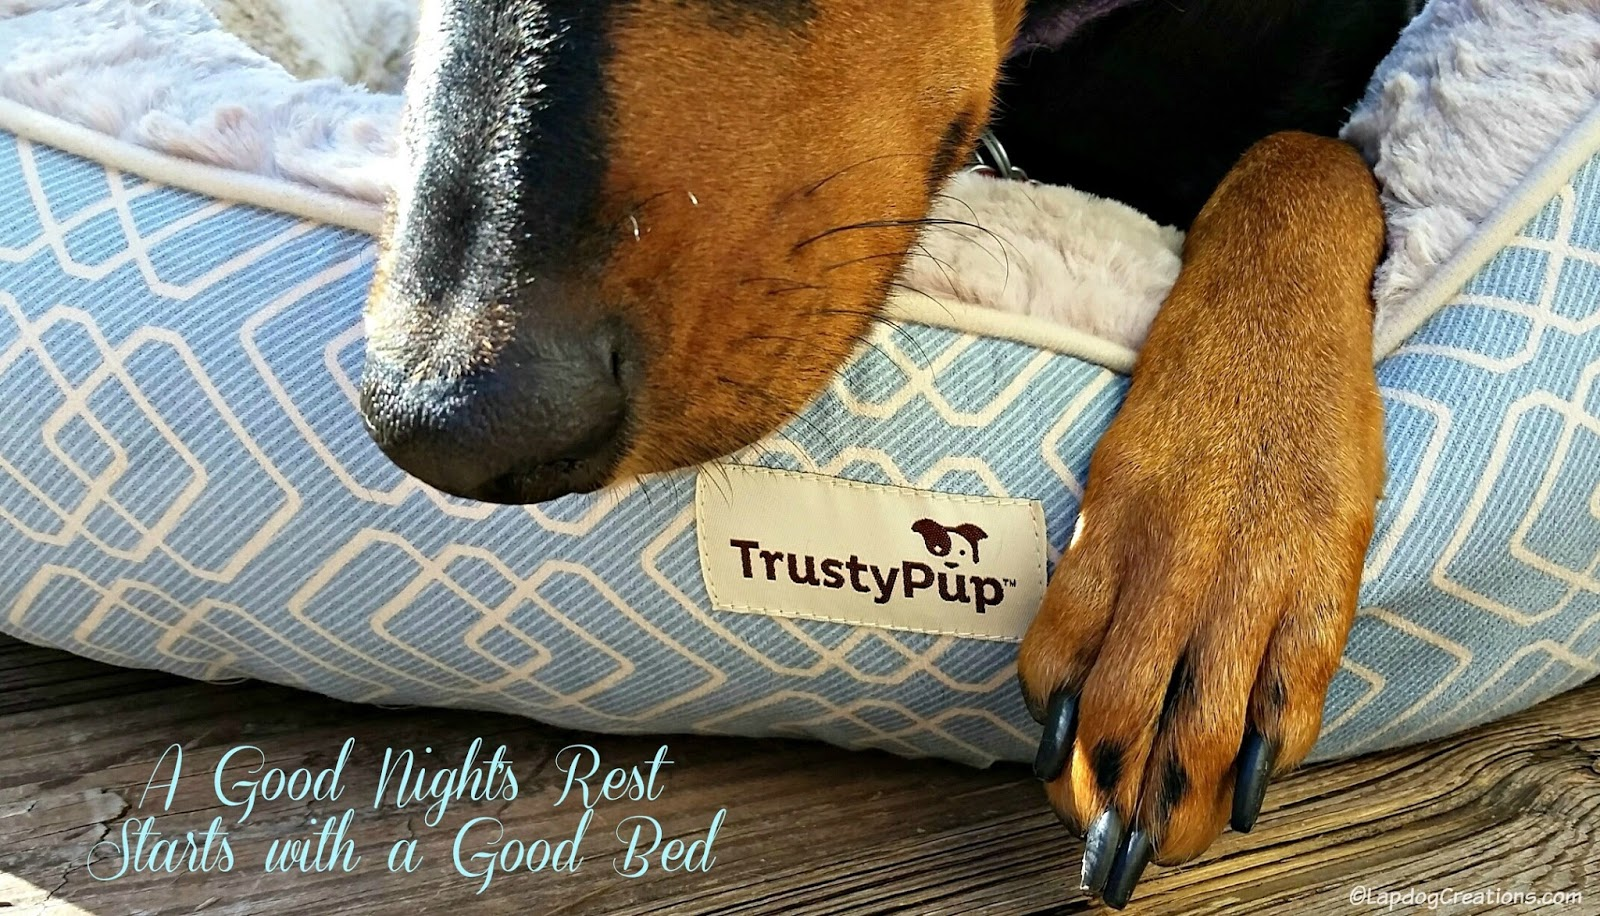 lapdog creations: your pup will rest easy with trustypup + giveaway